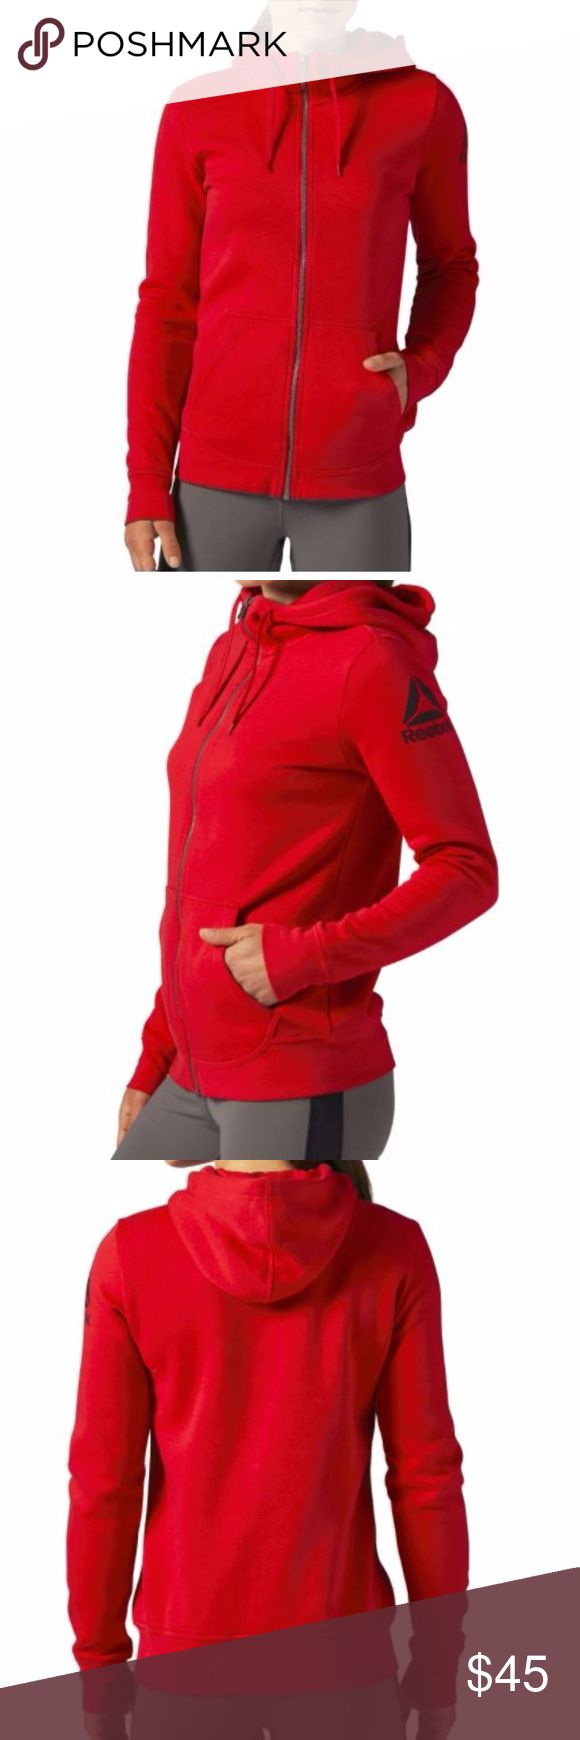 BNWT Reebok Women's Full Zip Jacket w/ Hood Brand New w/ Tag Reebok Women's  FLEECE HOODIE WITH KANGAROO POCKETS Color: Red Fabric: 70% Cotton / 30% Polyester, fleece fabric for comfort and warmth Fit: Slim - wears close to the body for a sleek, sophisticated silhouette Best for: Casual wear, layering, cool weather Full-length zipper for easy layering Two-panel hood with a drawcord for an adjustable fit Kangaroo pocket for storage and warming hands Ribbing at the hem and cuffs creates a snug…